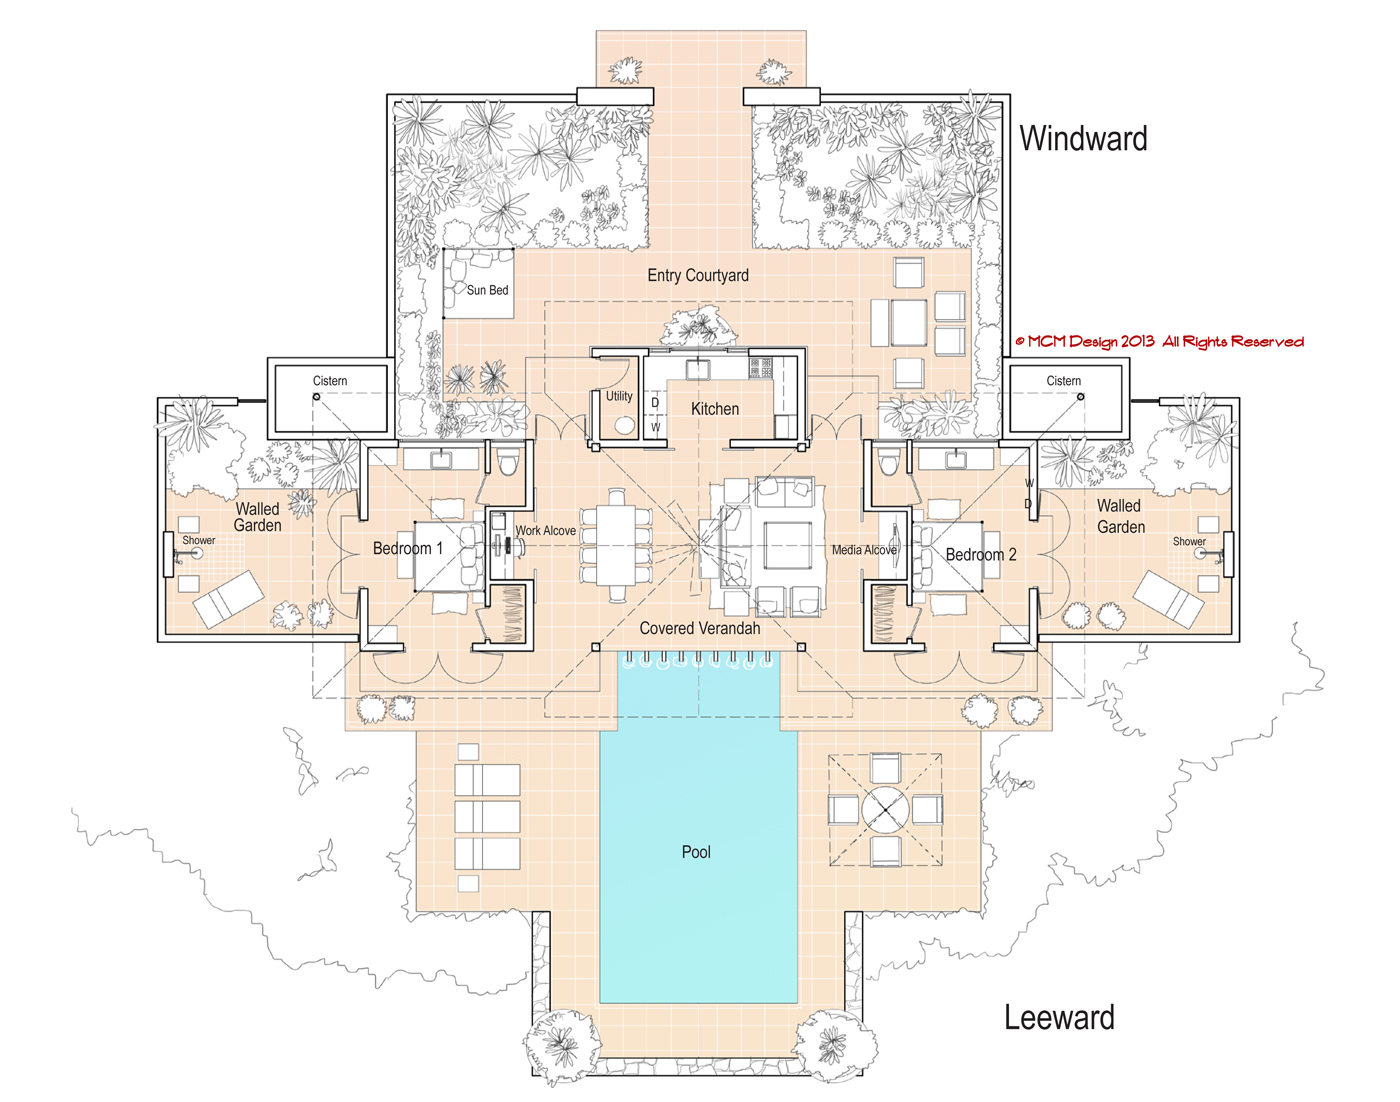 Mcm Design Minimum Island House Plan: house layout plan